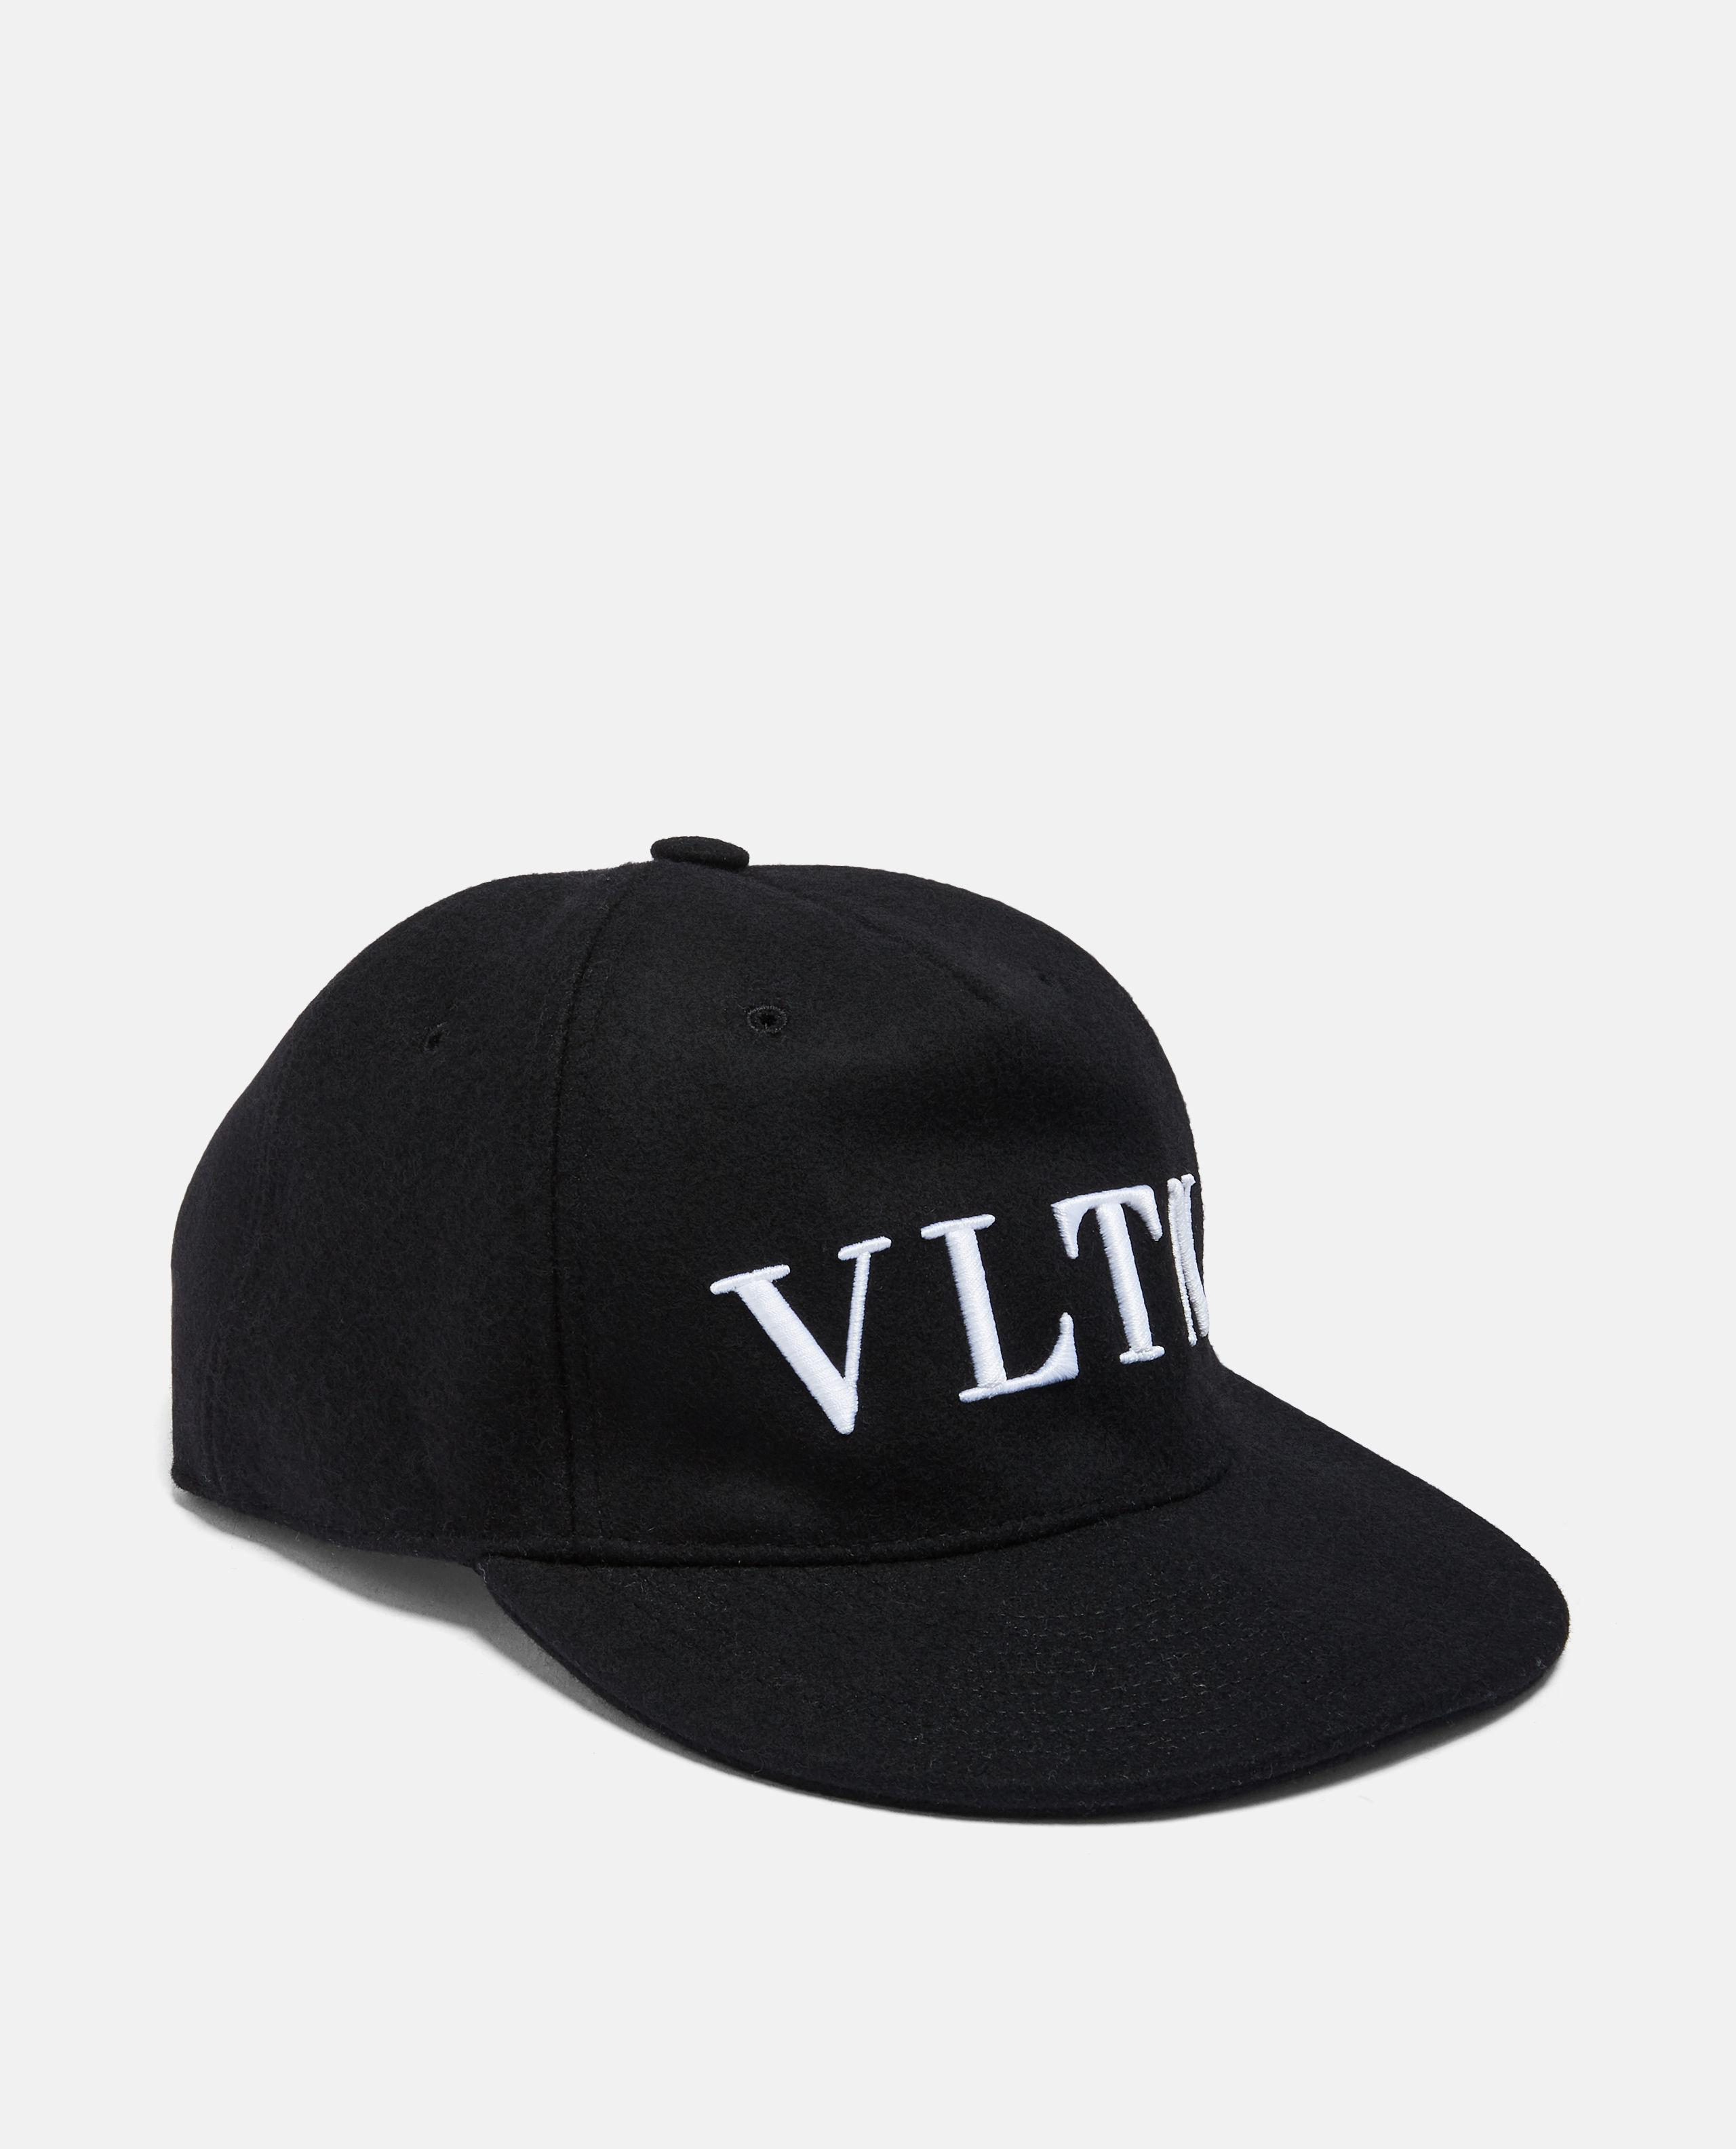 b080bc2a1cf Lyst - Valentino Vltn Hat in Black for Men